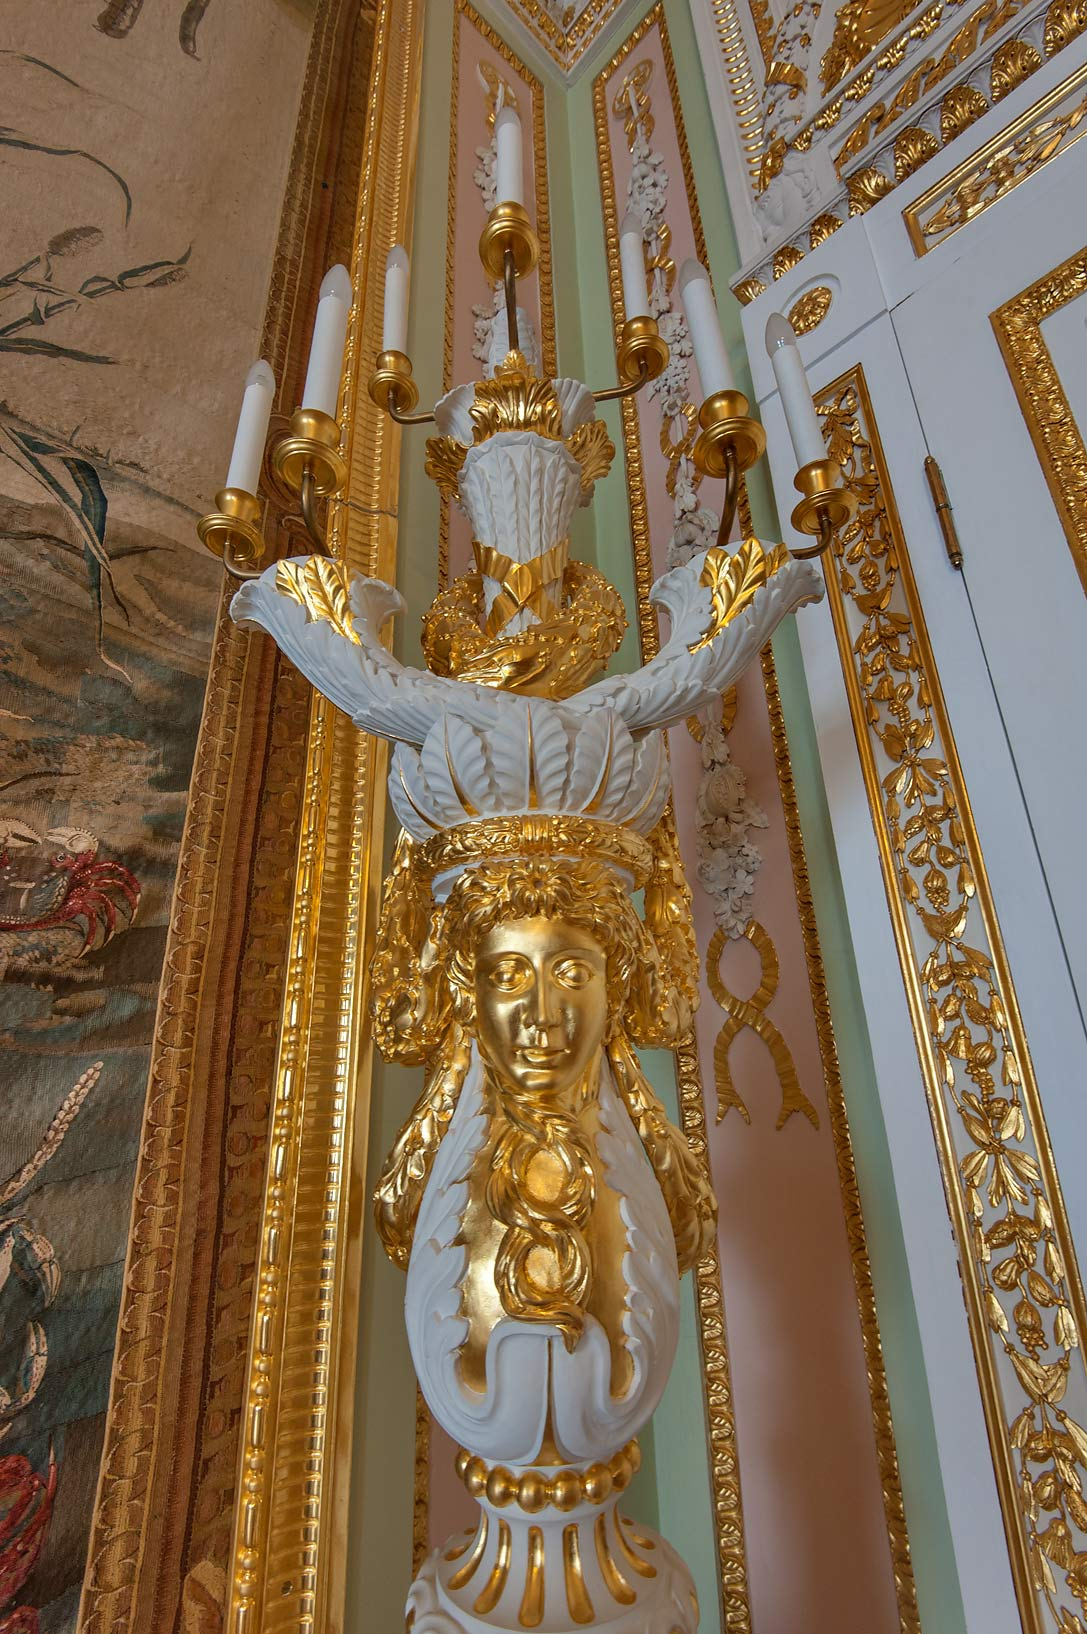 Gilded torch in Gatchina Palace. Gatchina, suburb of St.Petersburg, Russia